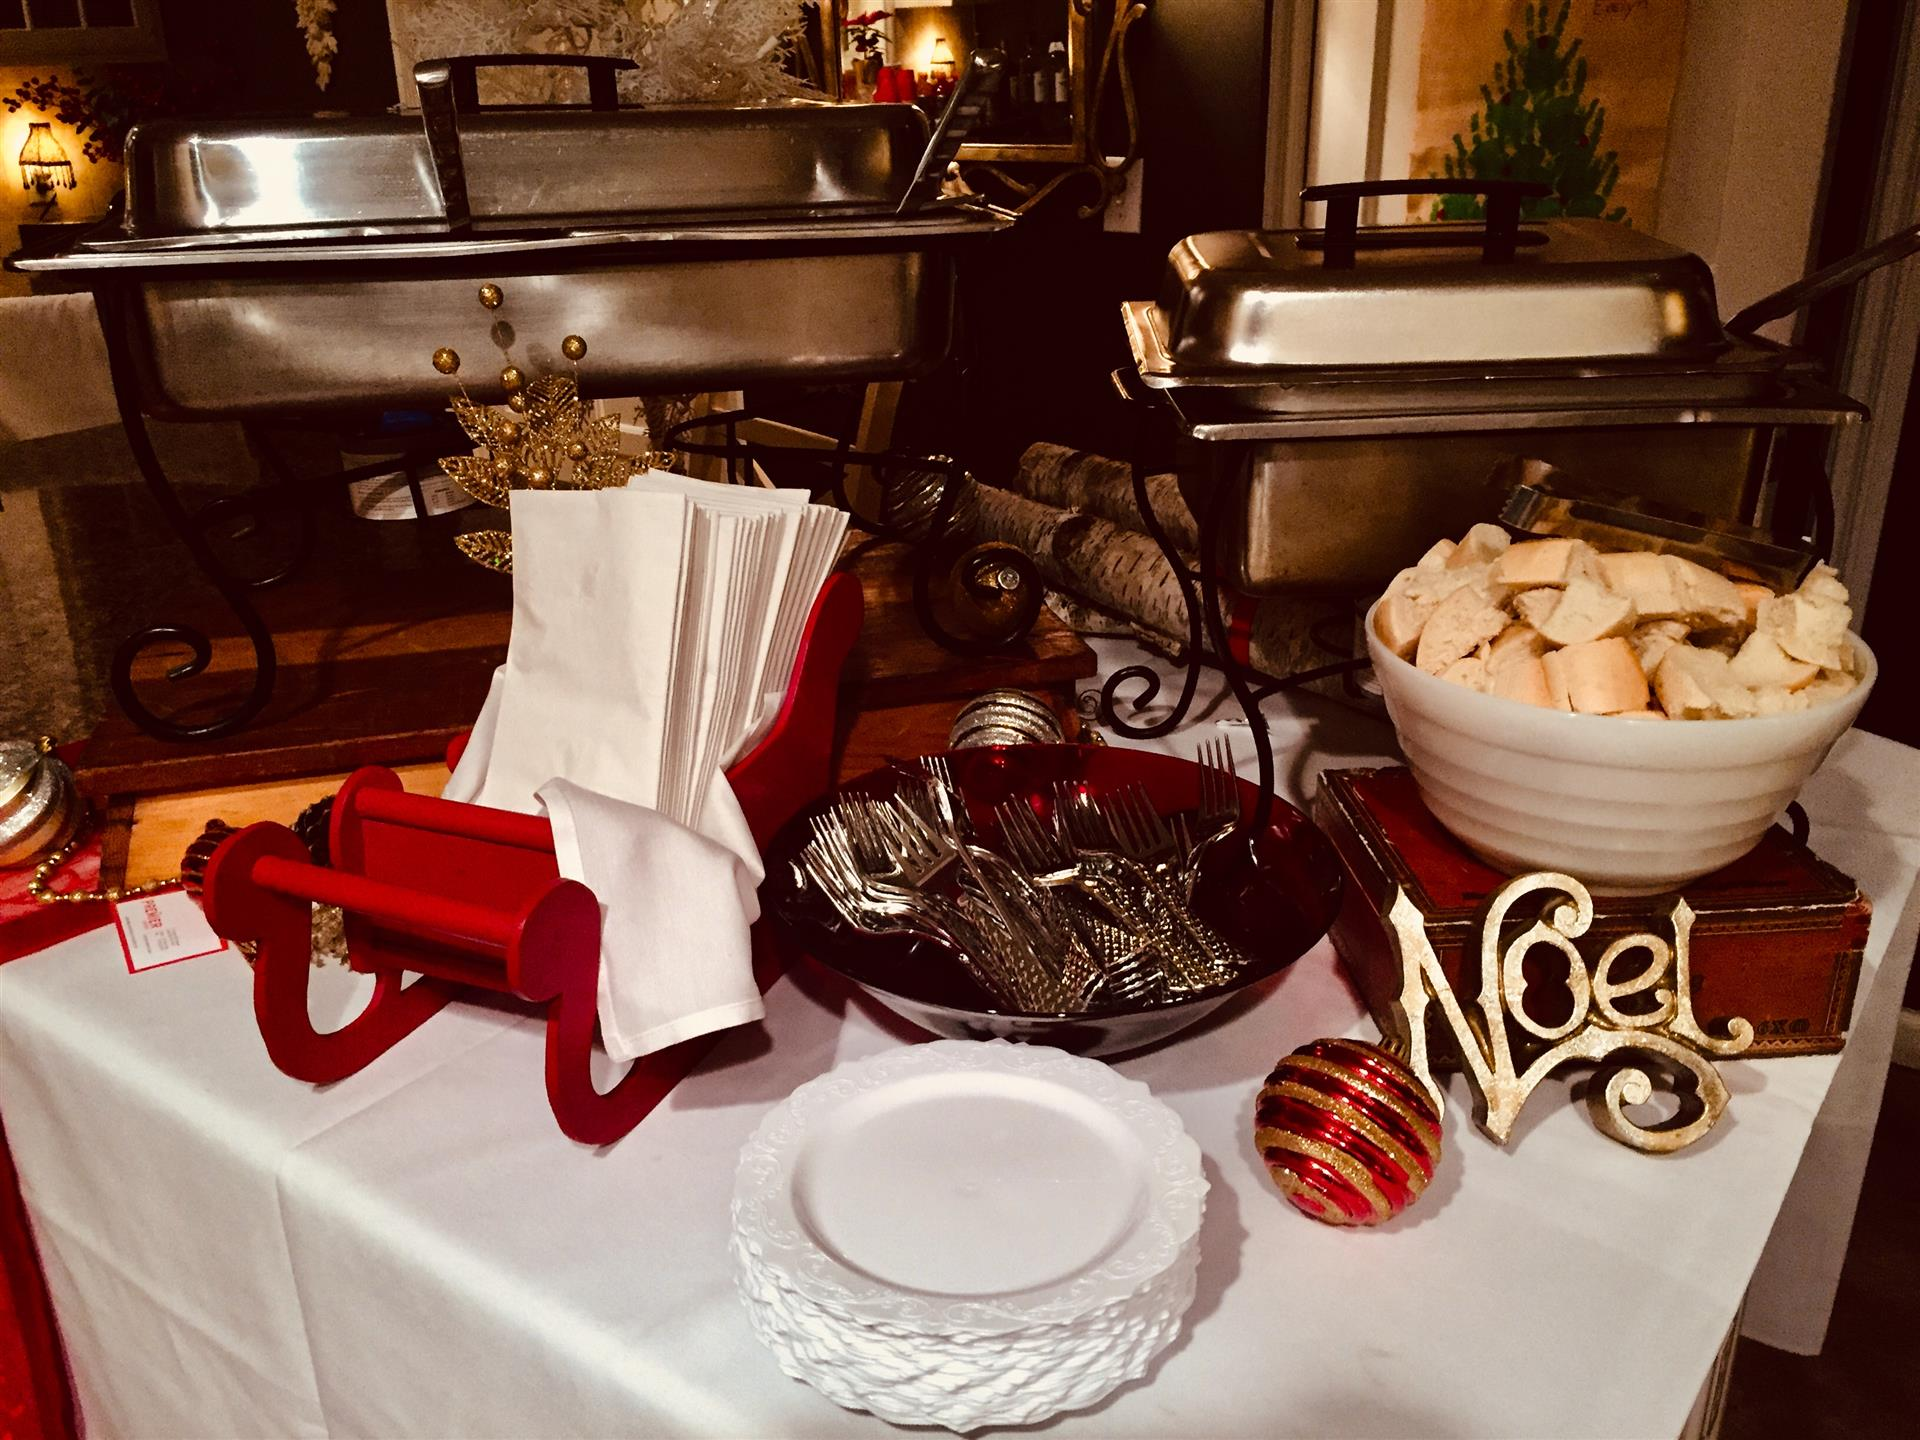 Christmas decorations with napkins and silverware inside